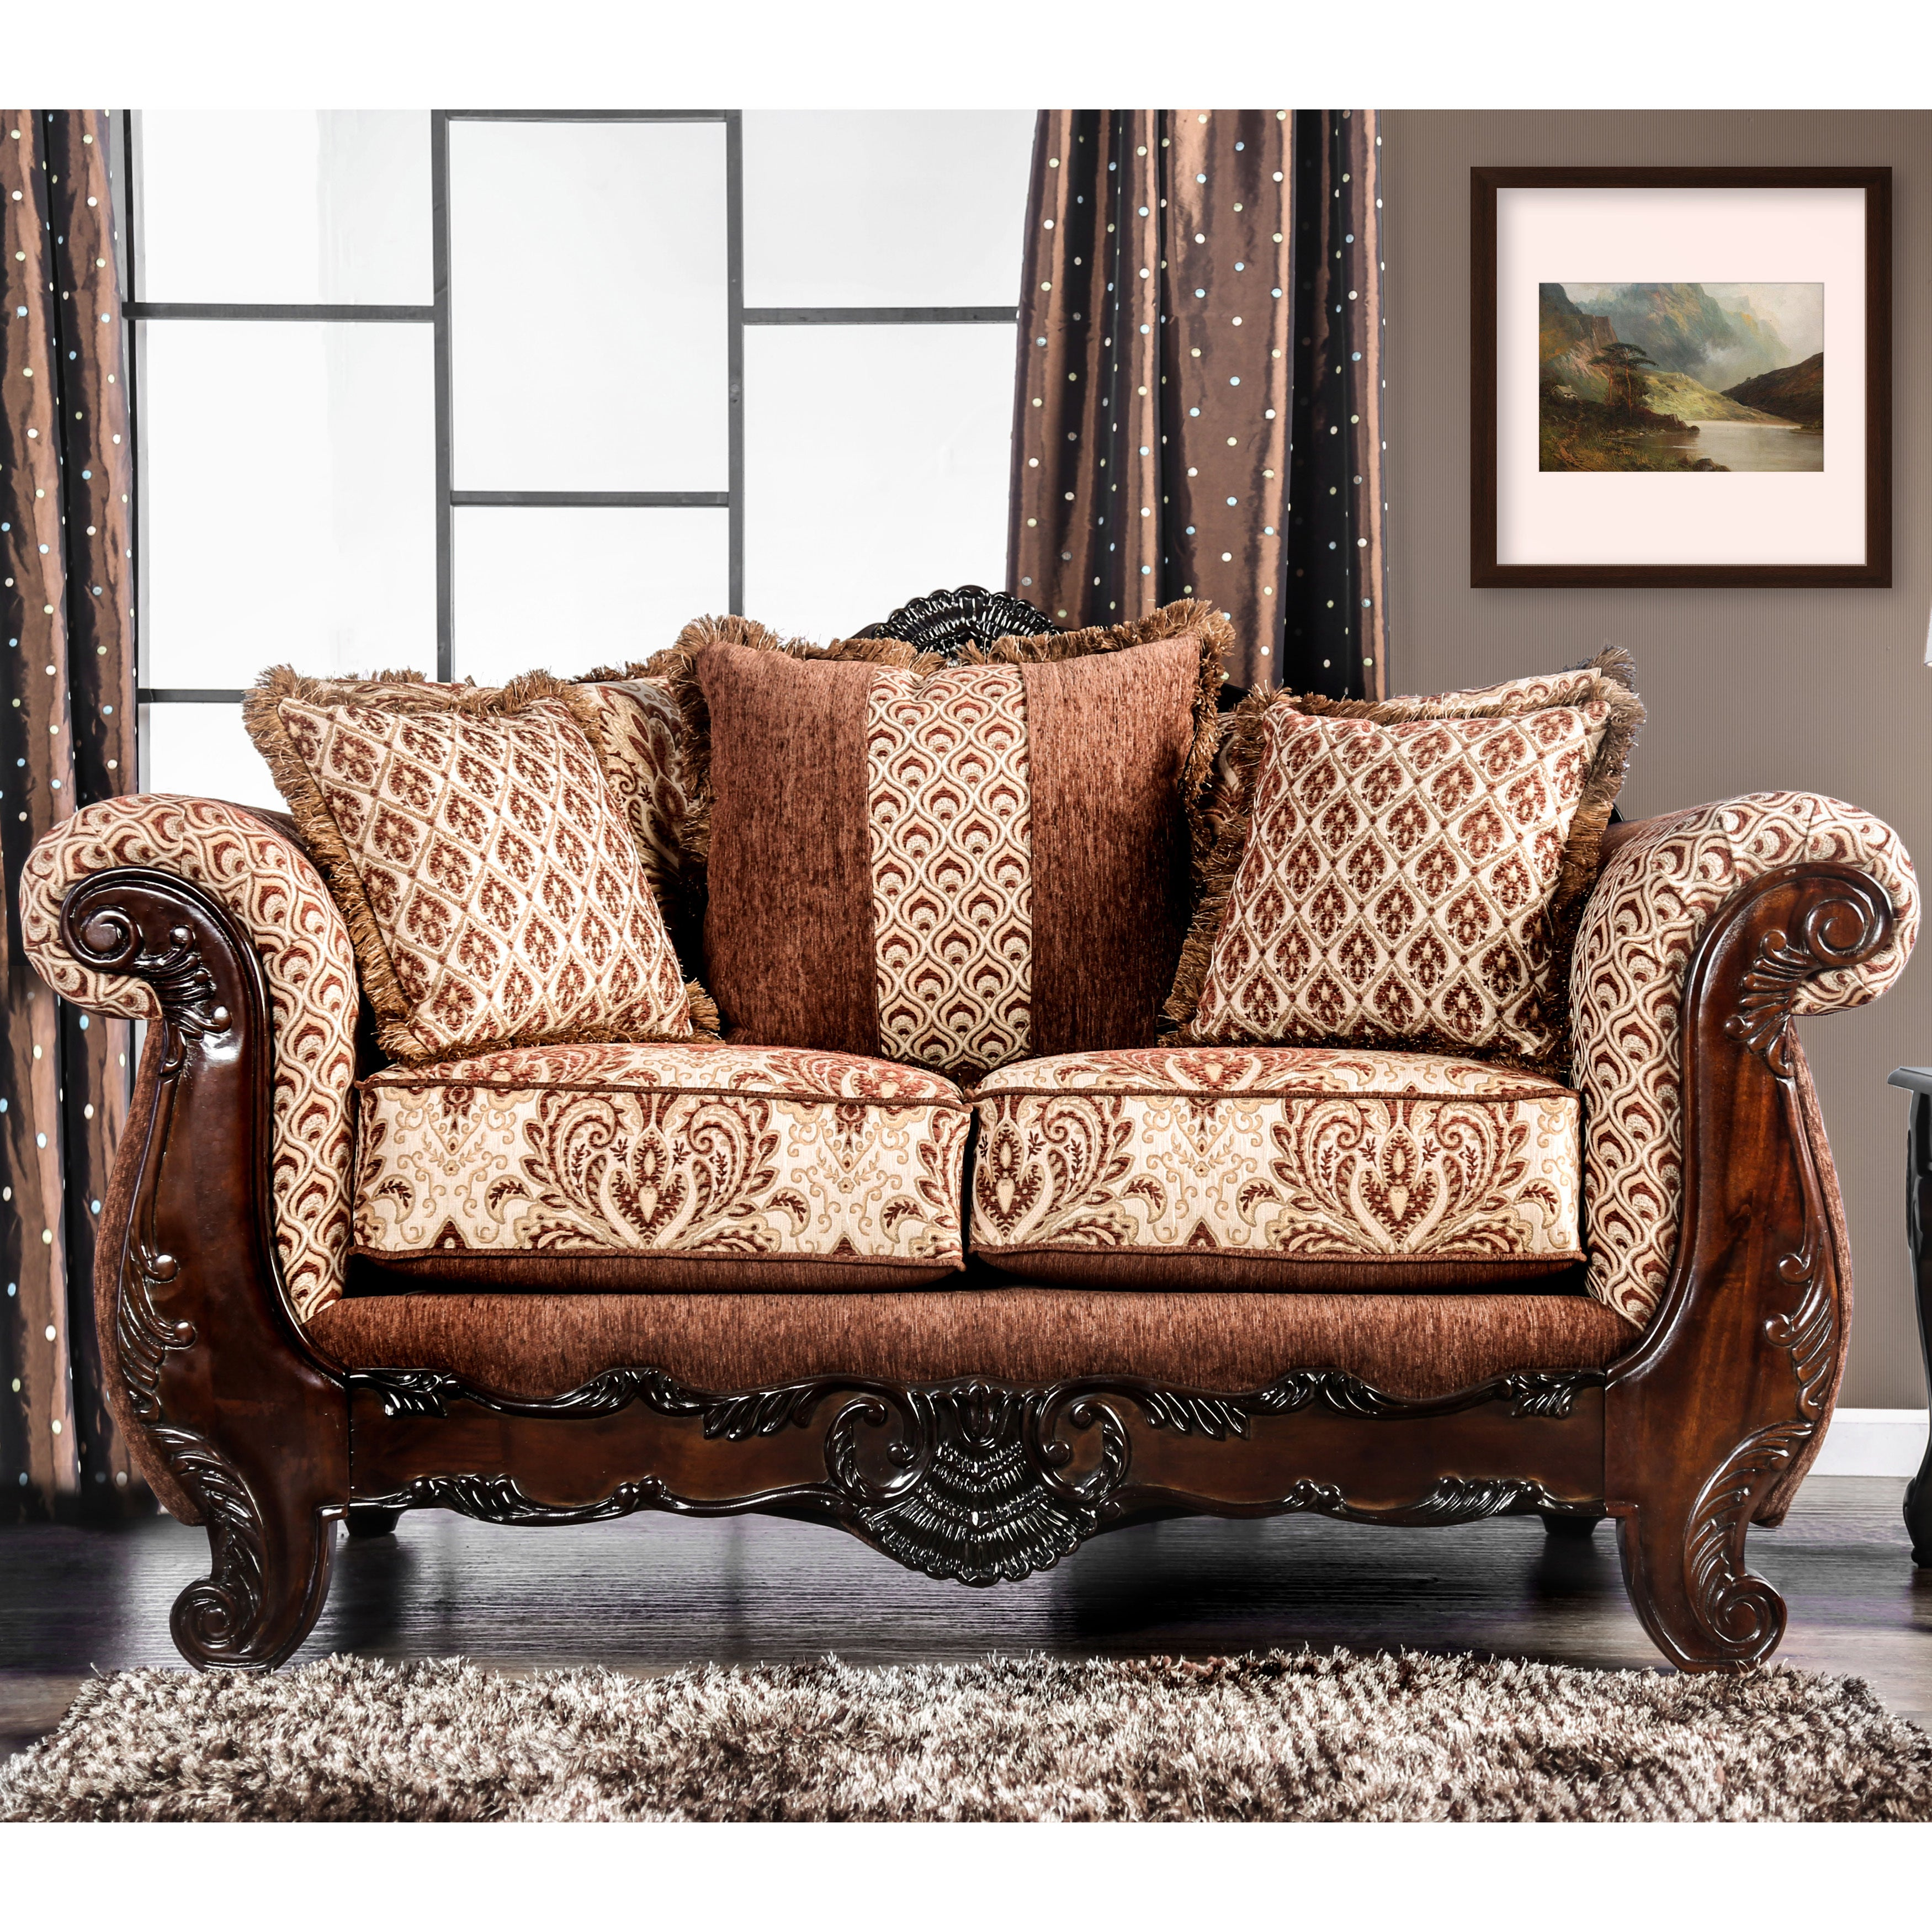 Furniture Of America Leticia Traditional 2 Piece Brown Damask Sofa Set Free Shipping Today 18213124